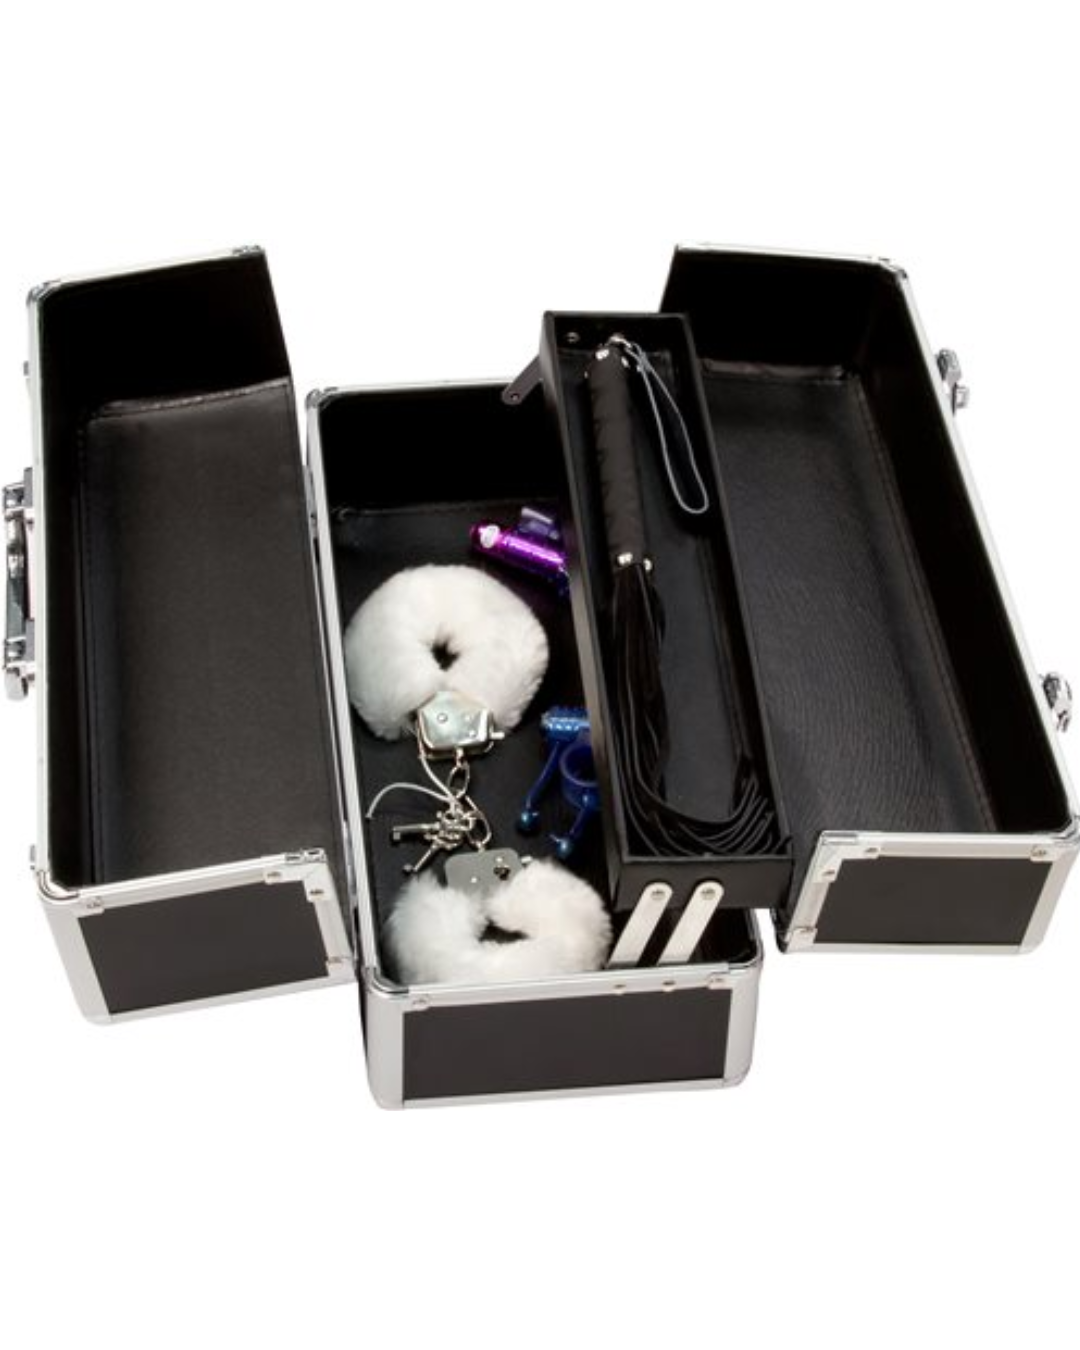 Lockable Sex Toy Storage Case Large - Black open and filled with toys